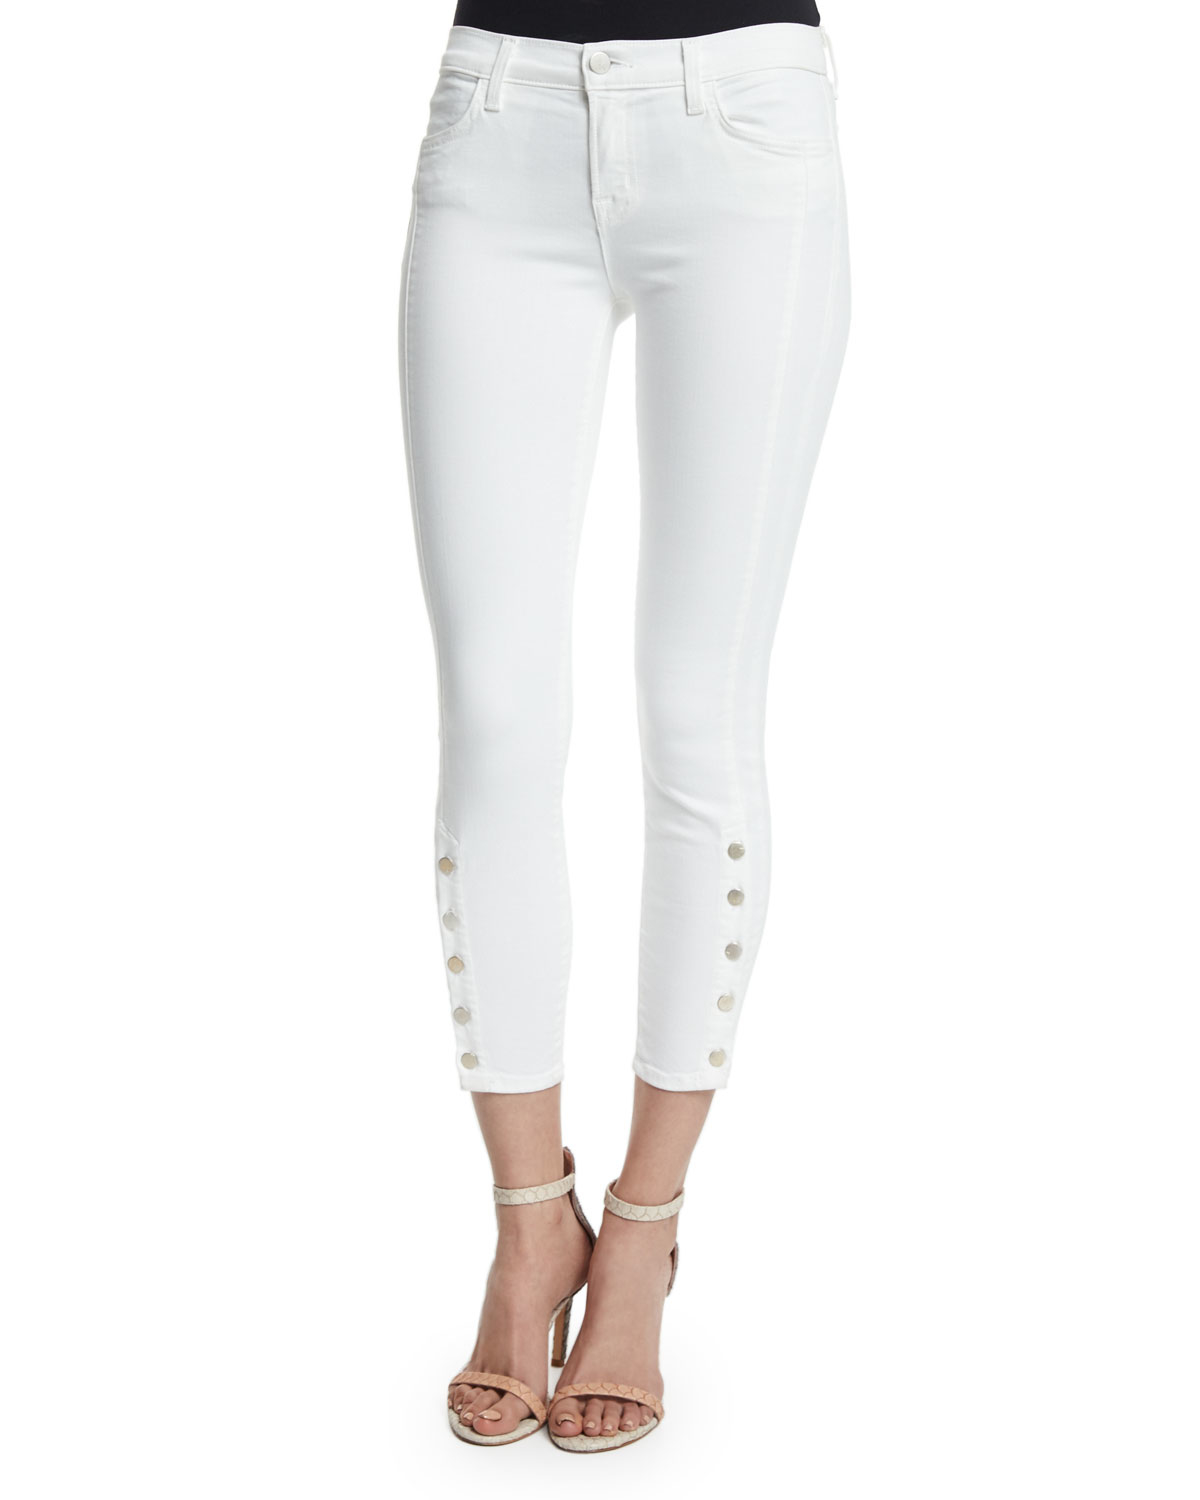 J brand Suvi Mid-rise Utility Cropped Jeans in White | Lyst